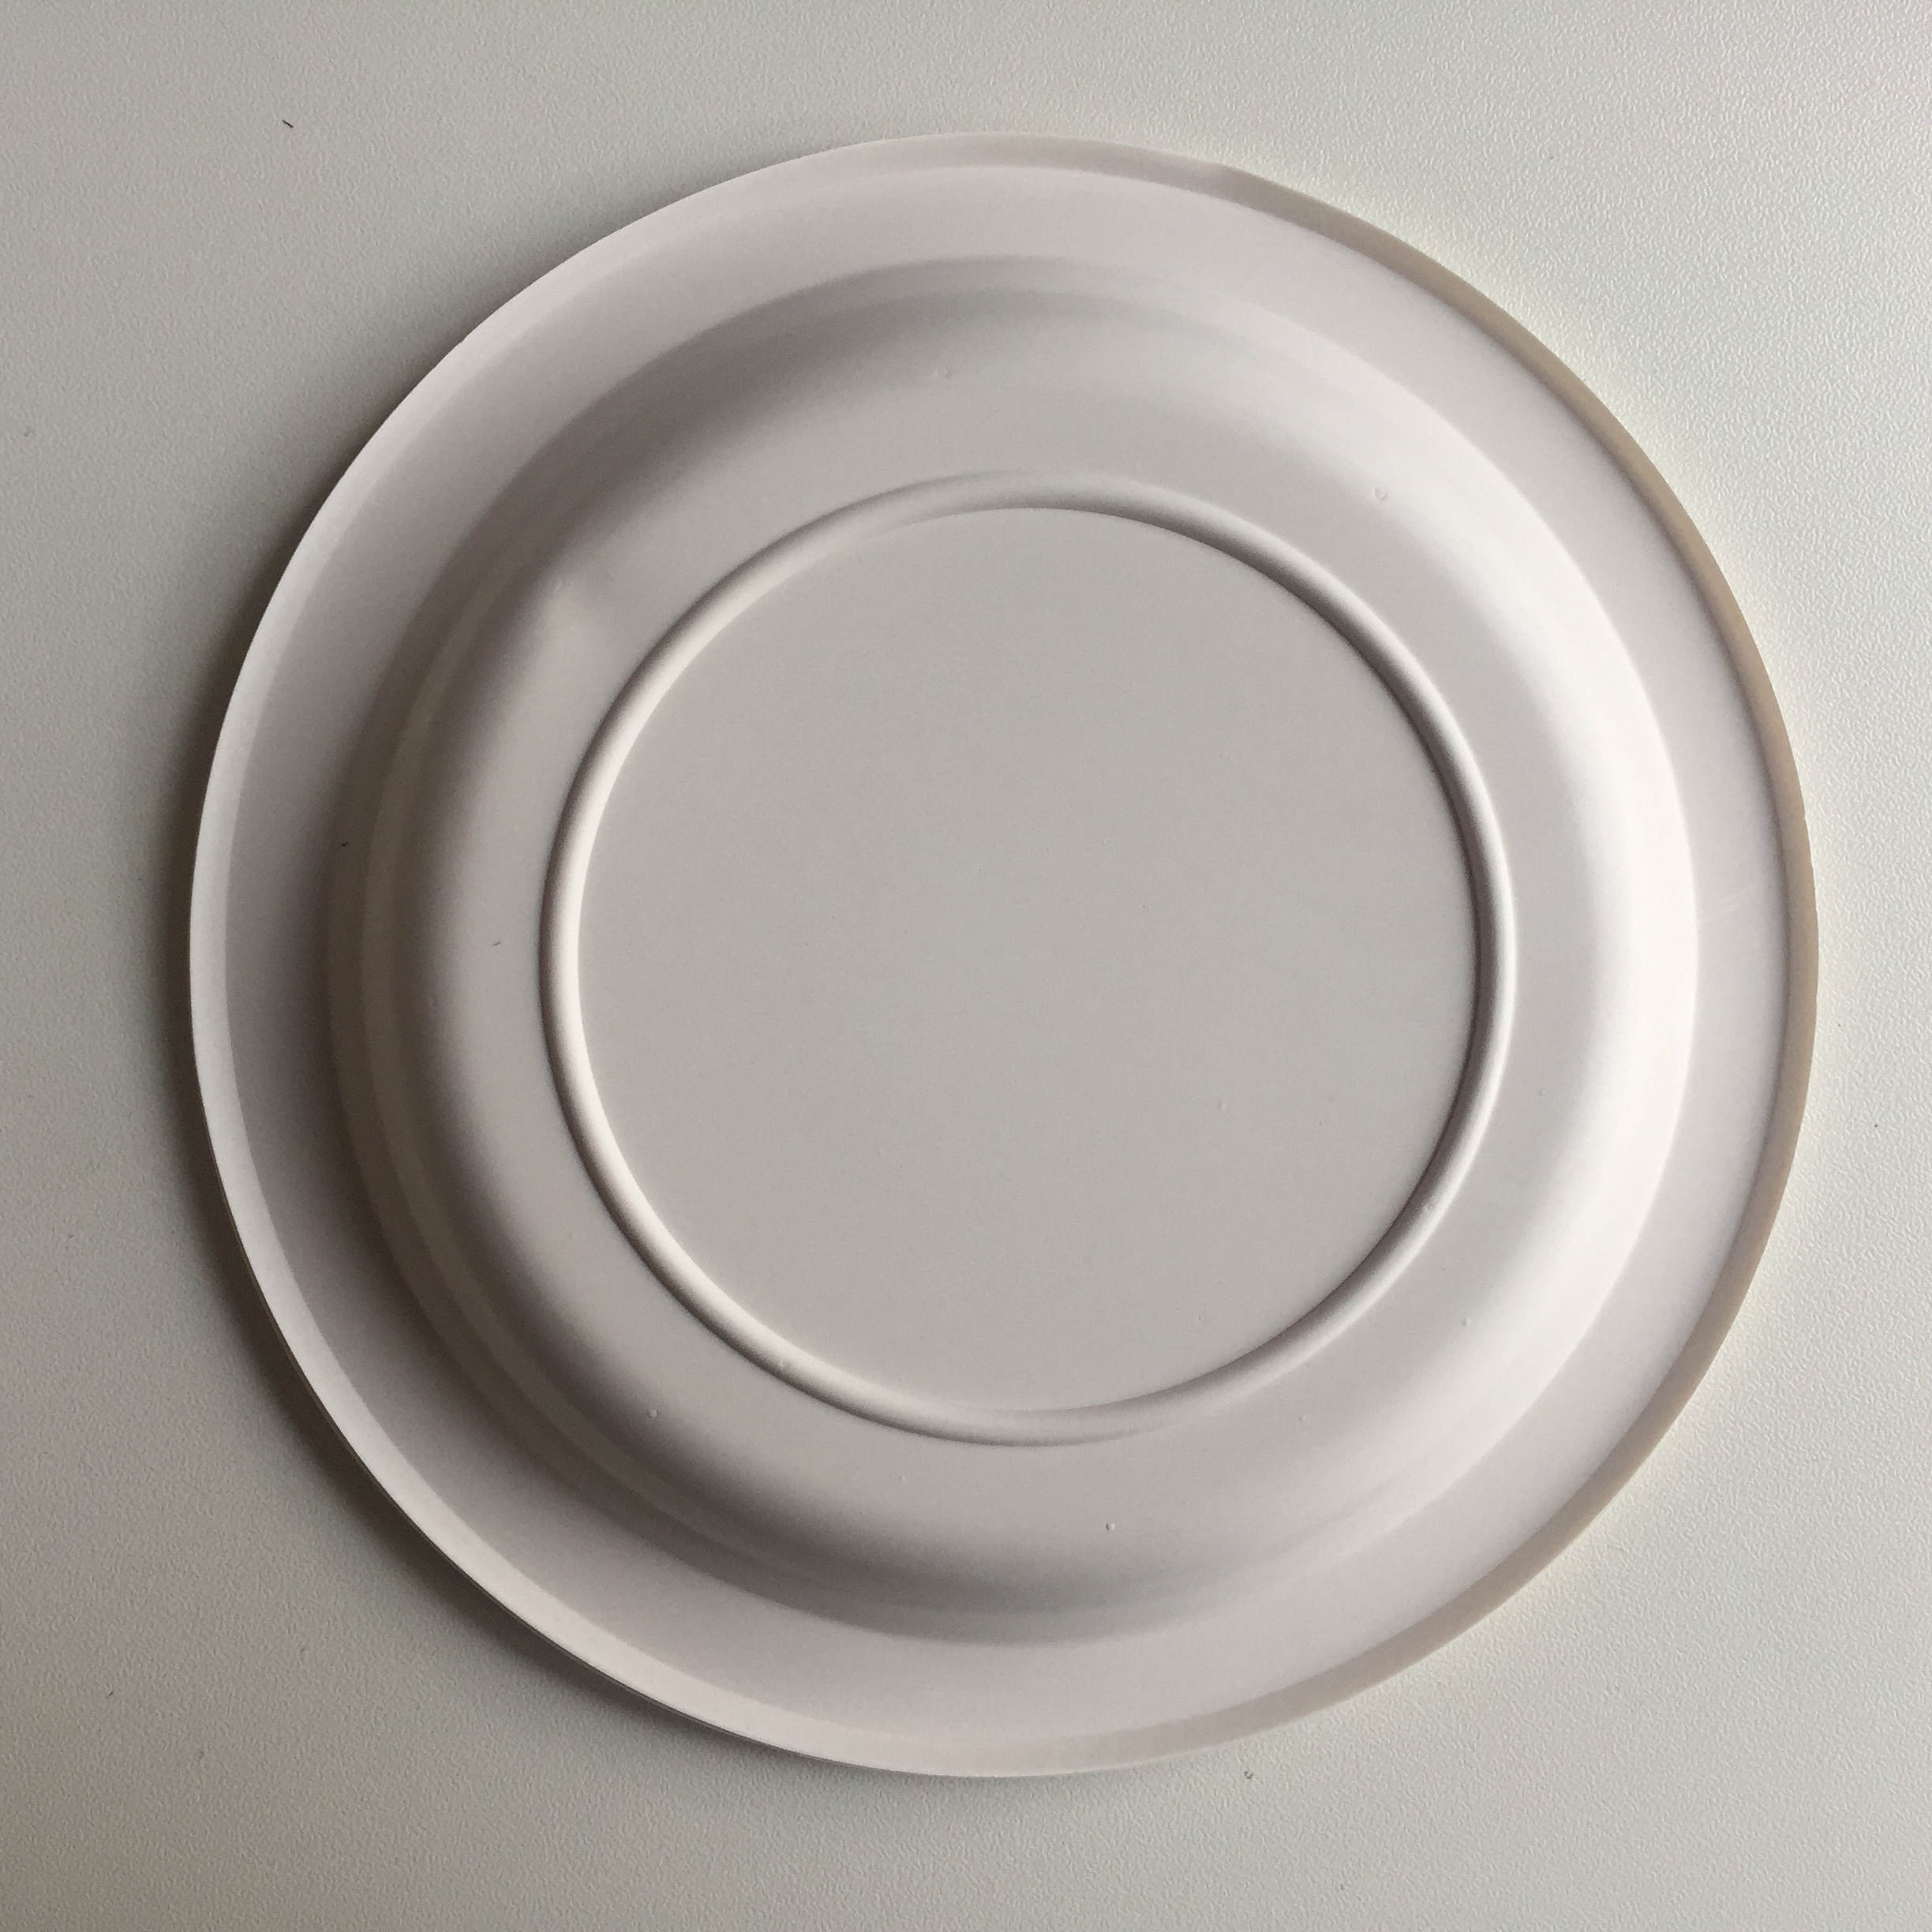 biodegradable Corn Starch Oval Plate